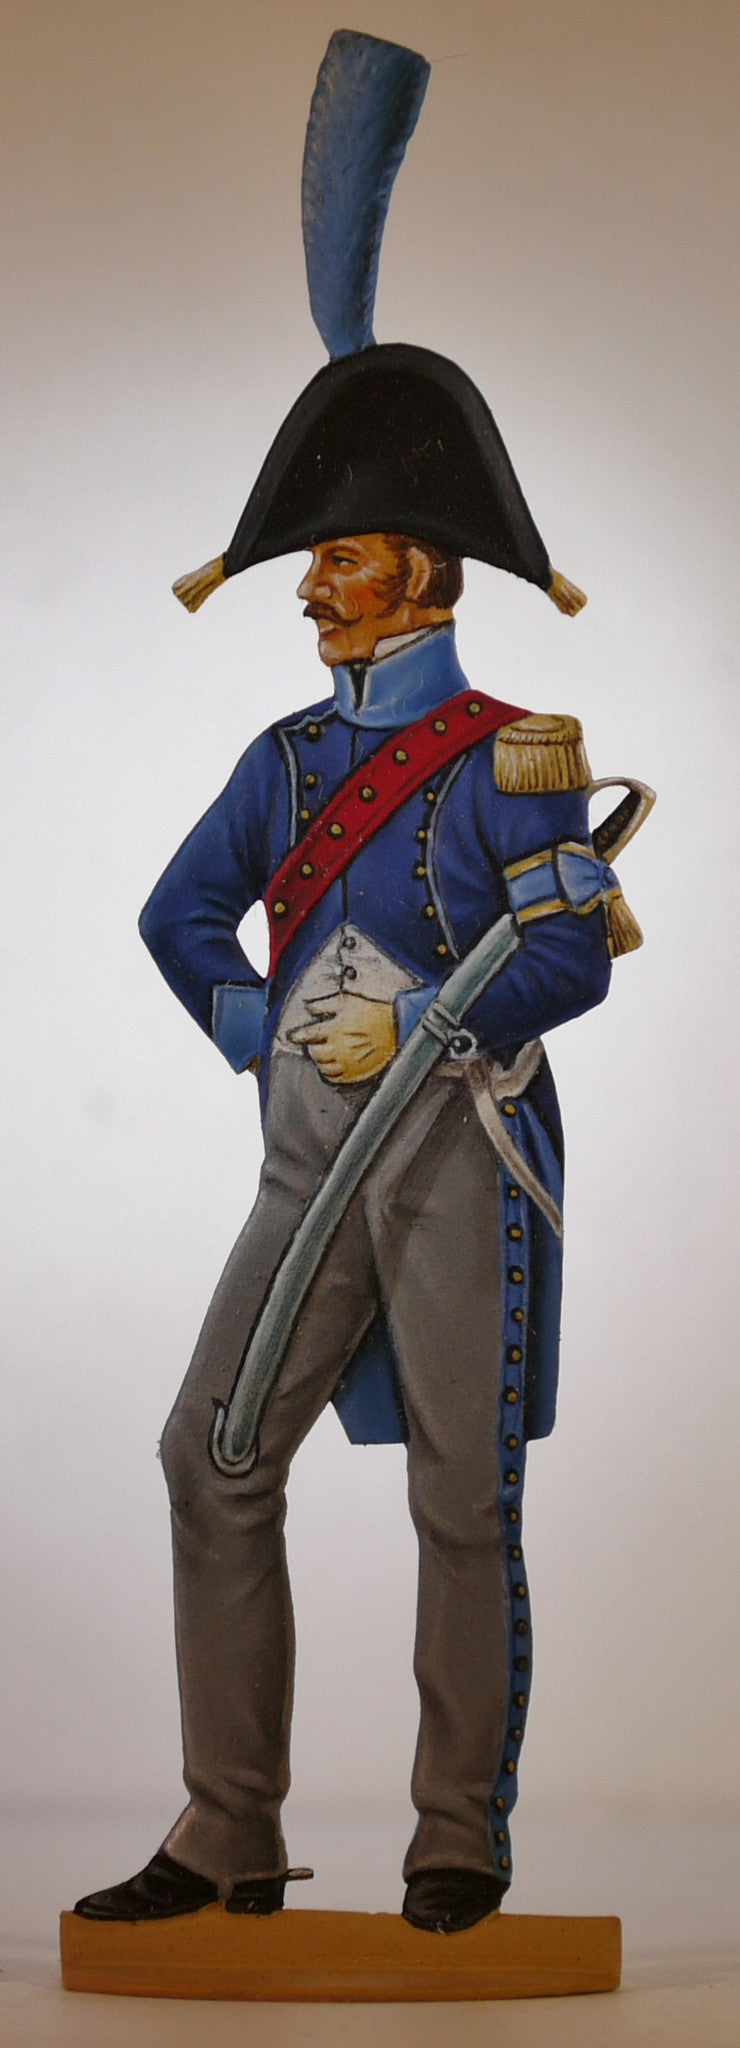 A.d.C. of Brigadier General, campaign dress. - Glorious Empires-Historical Miniatures